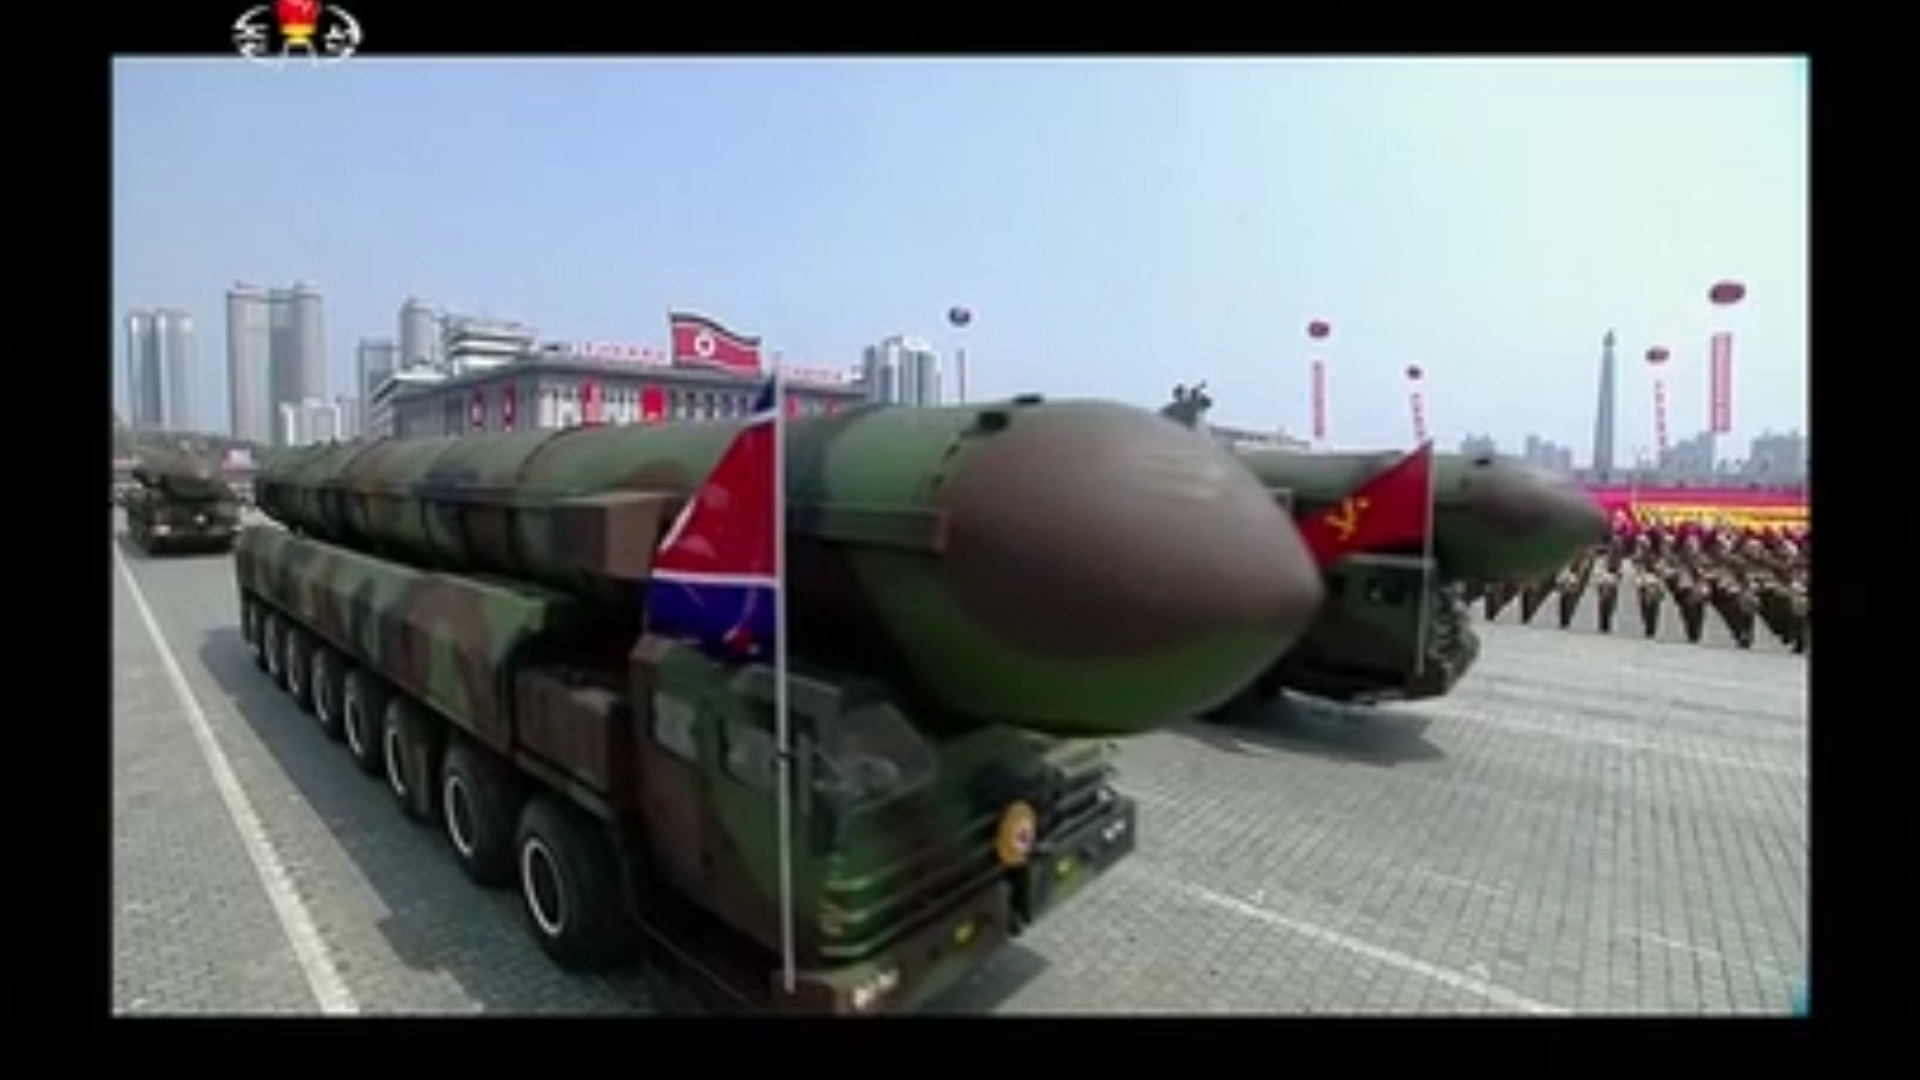 North Korea's display of new missiles is worrying, analysts say